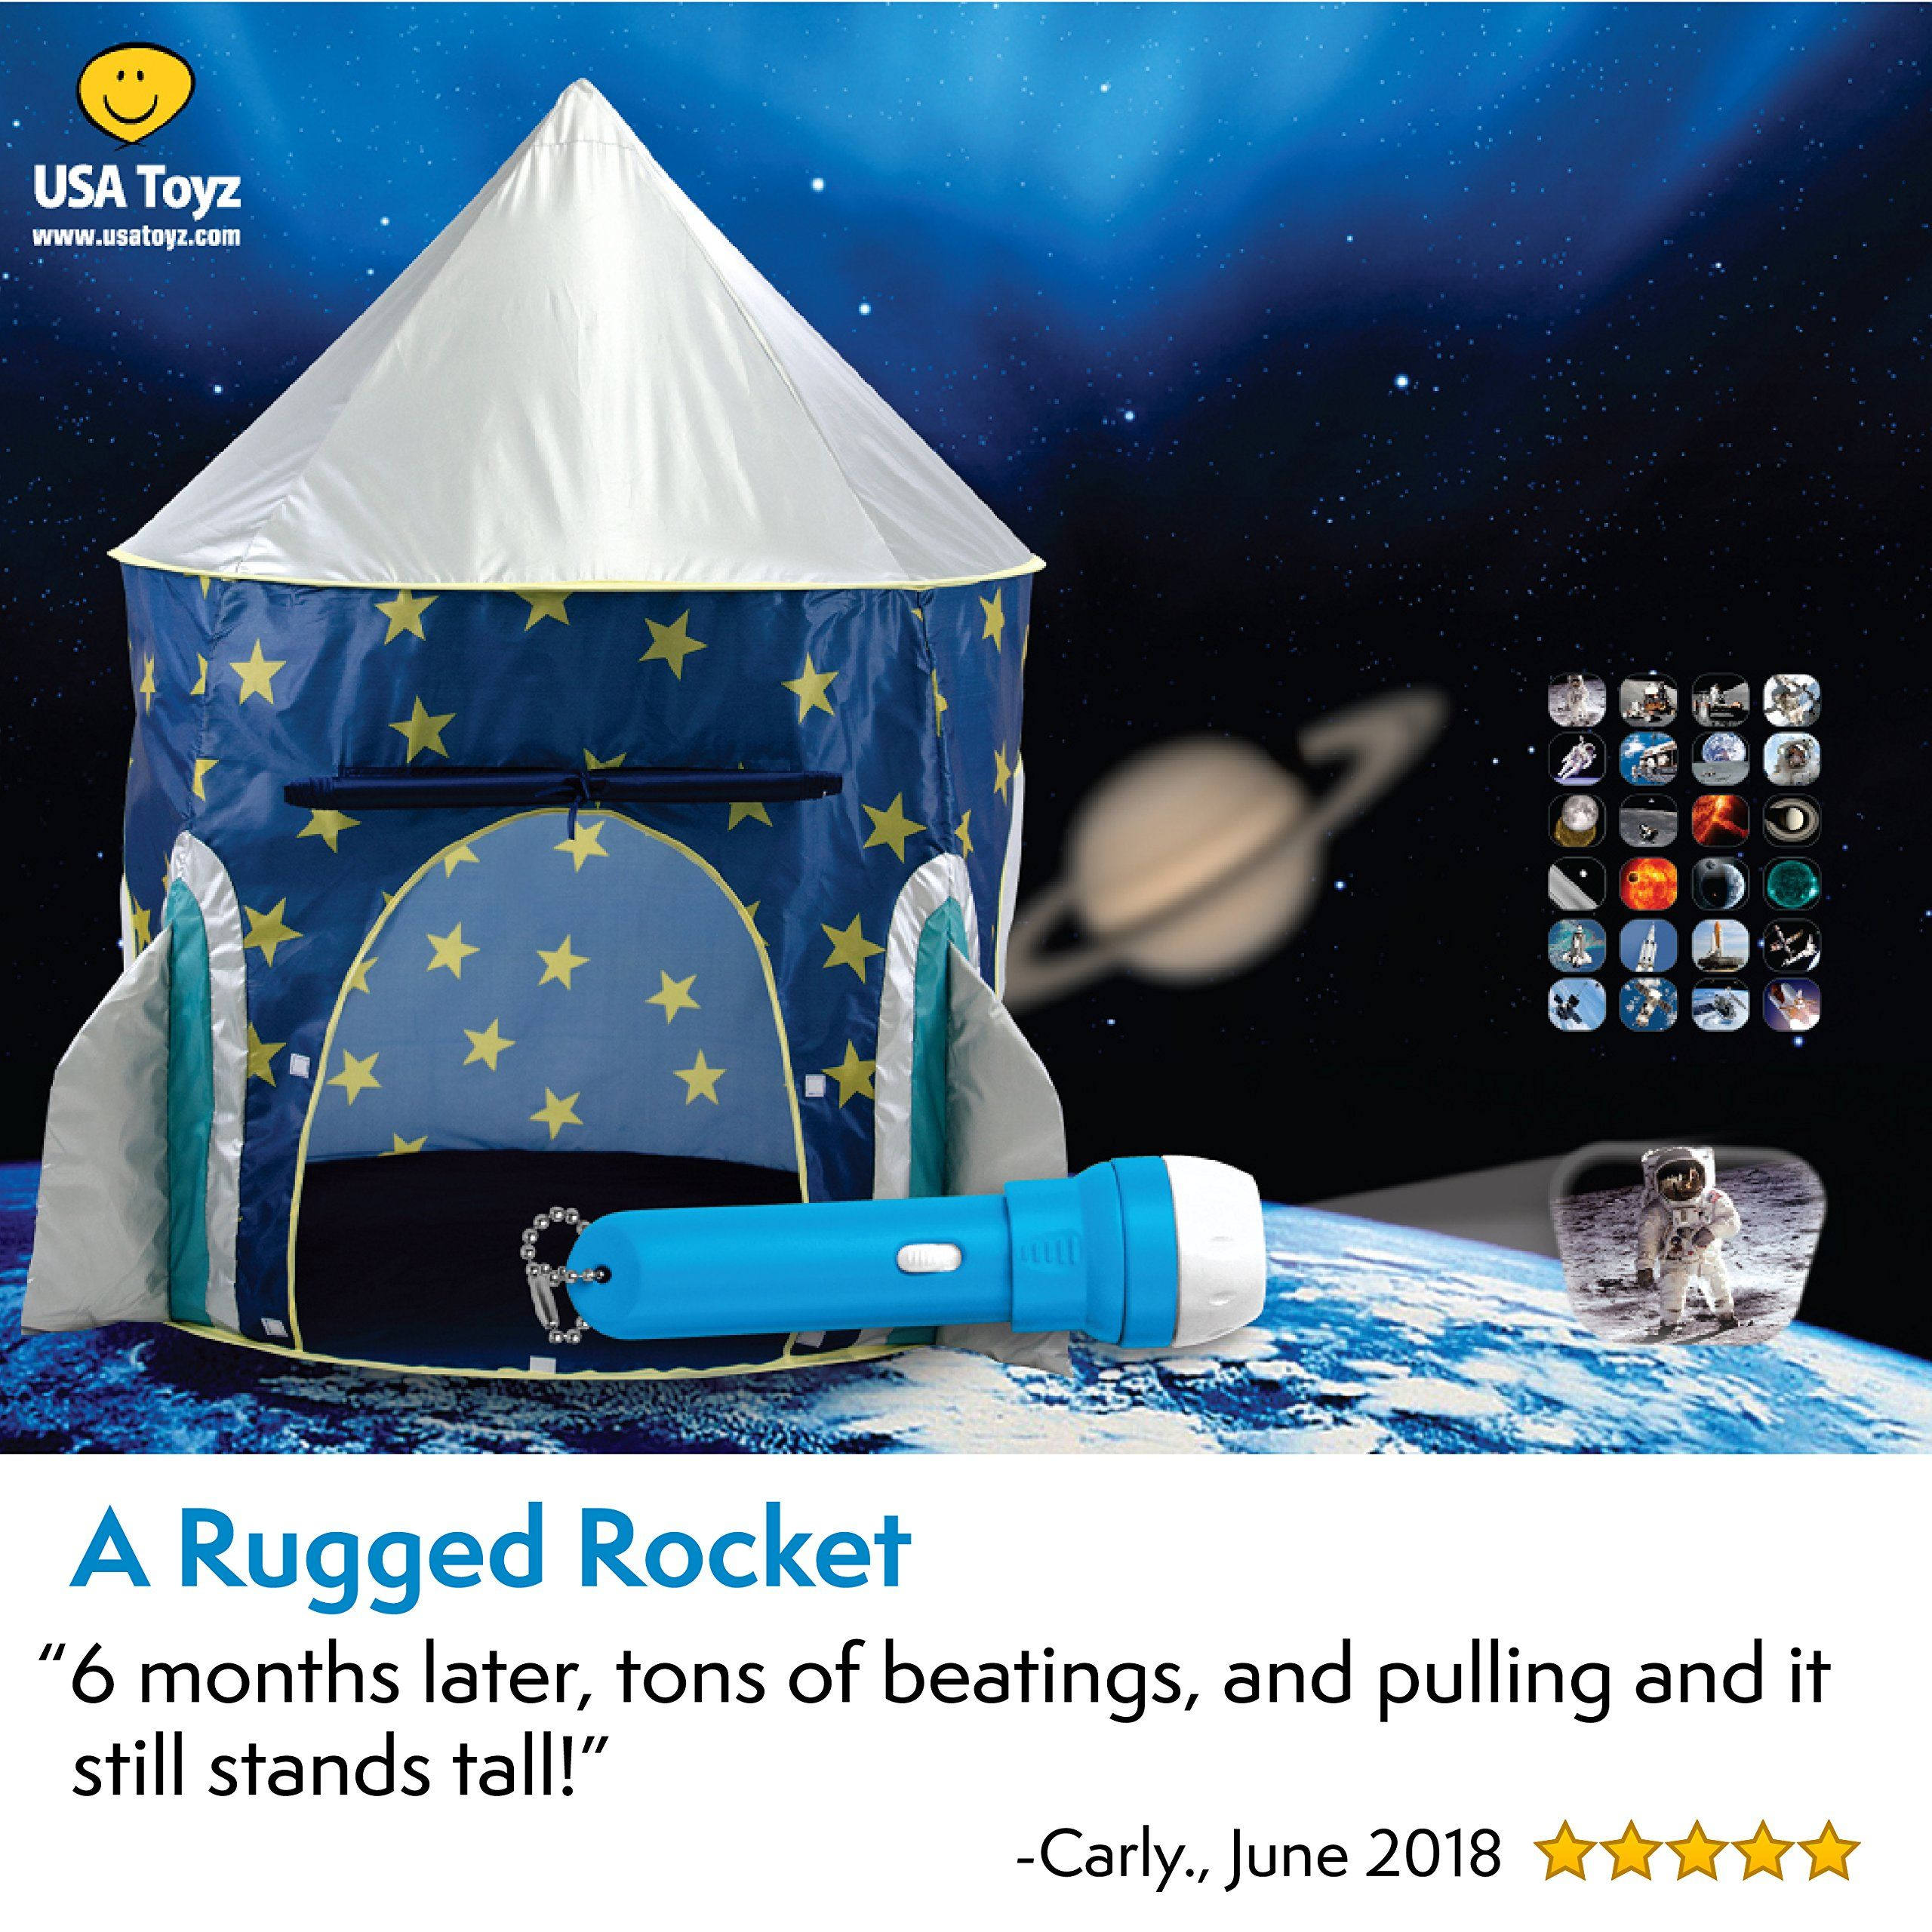 Usa Toyz Kids Play Tent A œrocket Shipa Kids Tent For Girls And Boys Playhouse Tent Toddler Toys Proj Top Gifts For Boys Kids Play Tent Cool Toys For Boys